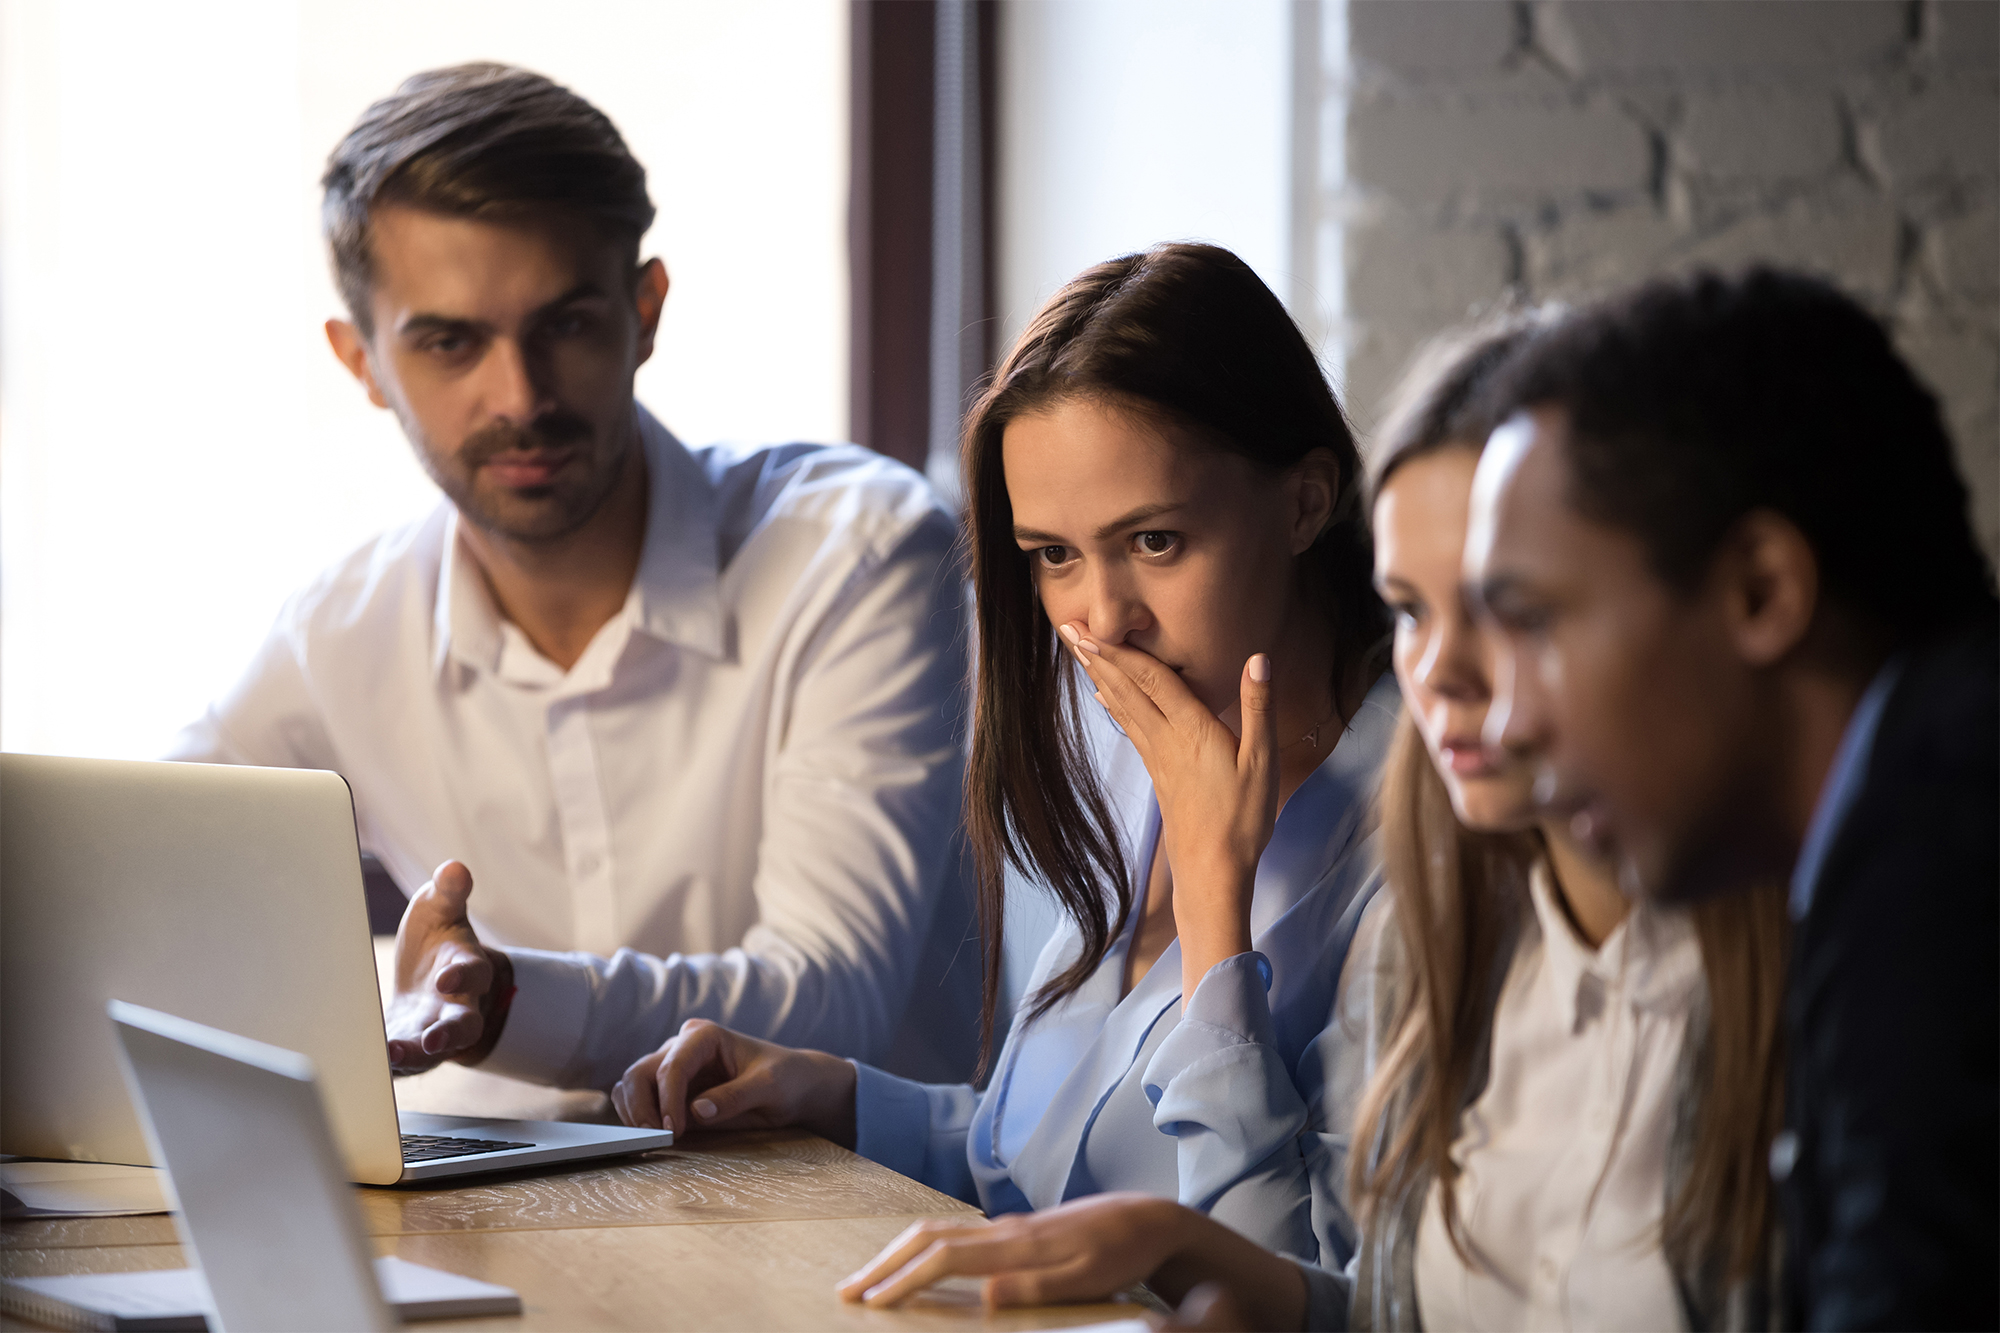 Group of coworkers receiving bad news